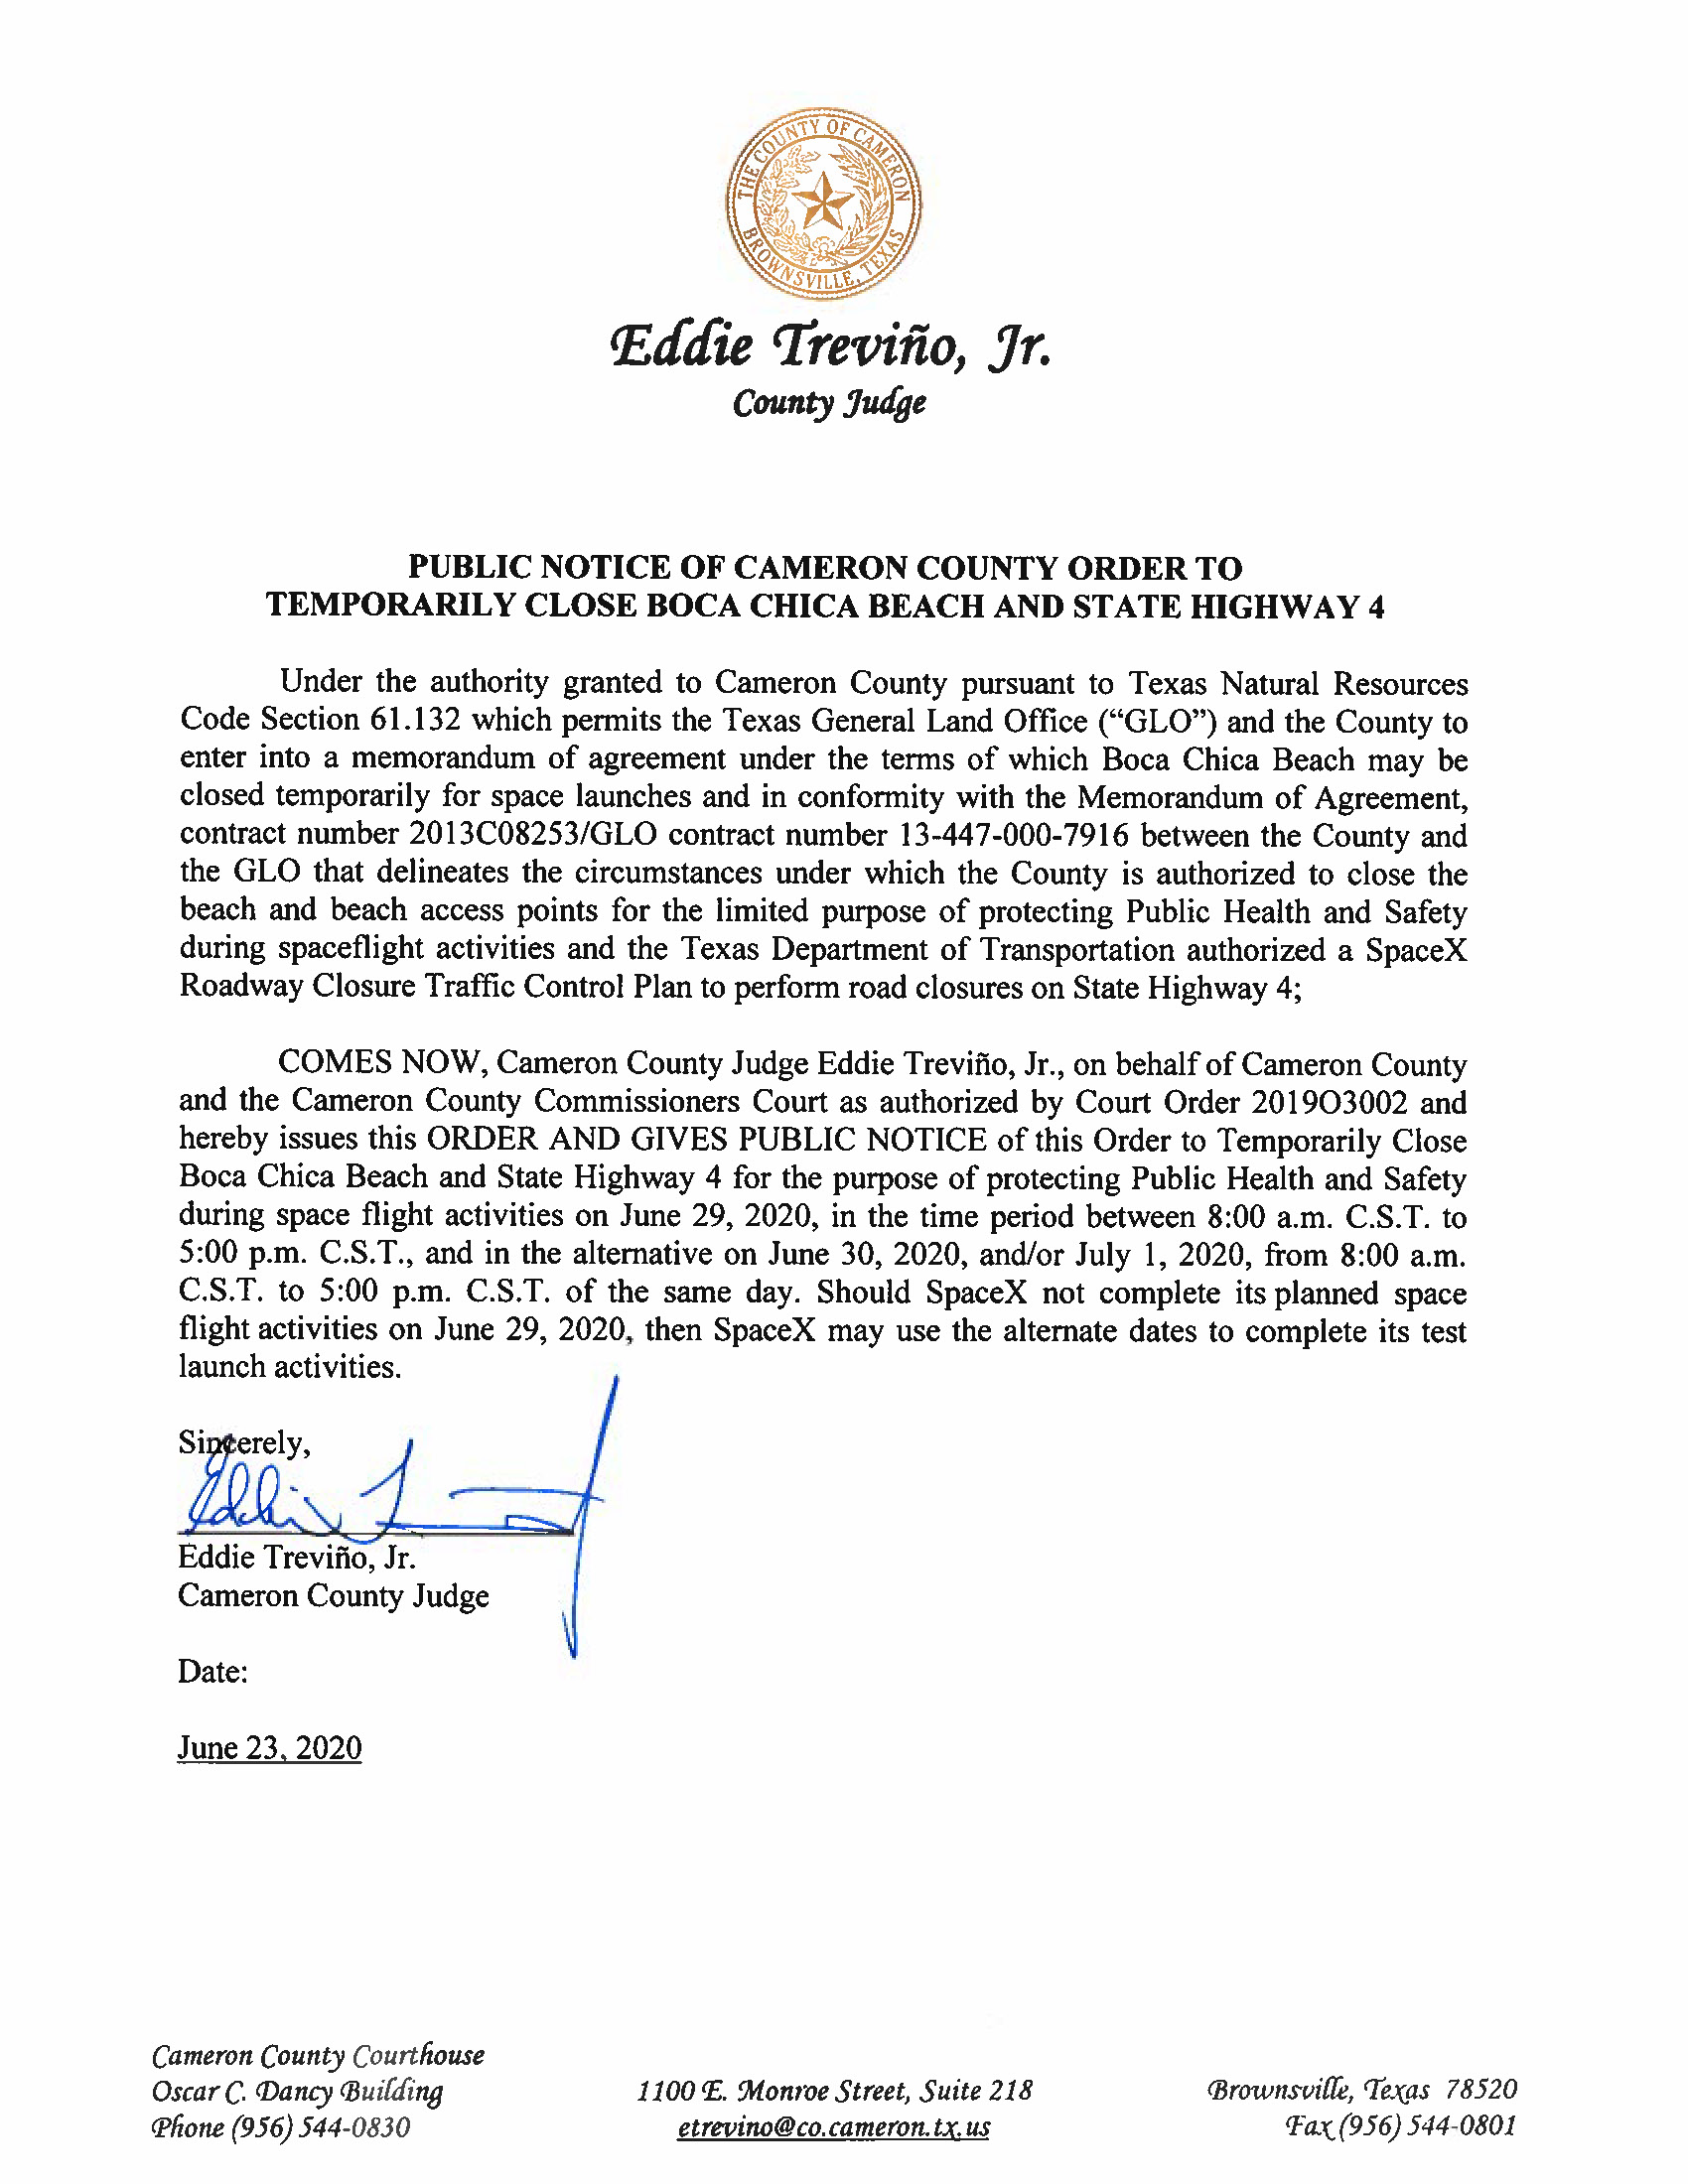 PUBLIC NOTICE OF CAMERON COUNTY ORDER TO TEMP. BEACH CLOSURE AND HWY.06.29.20 Page 1